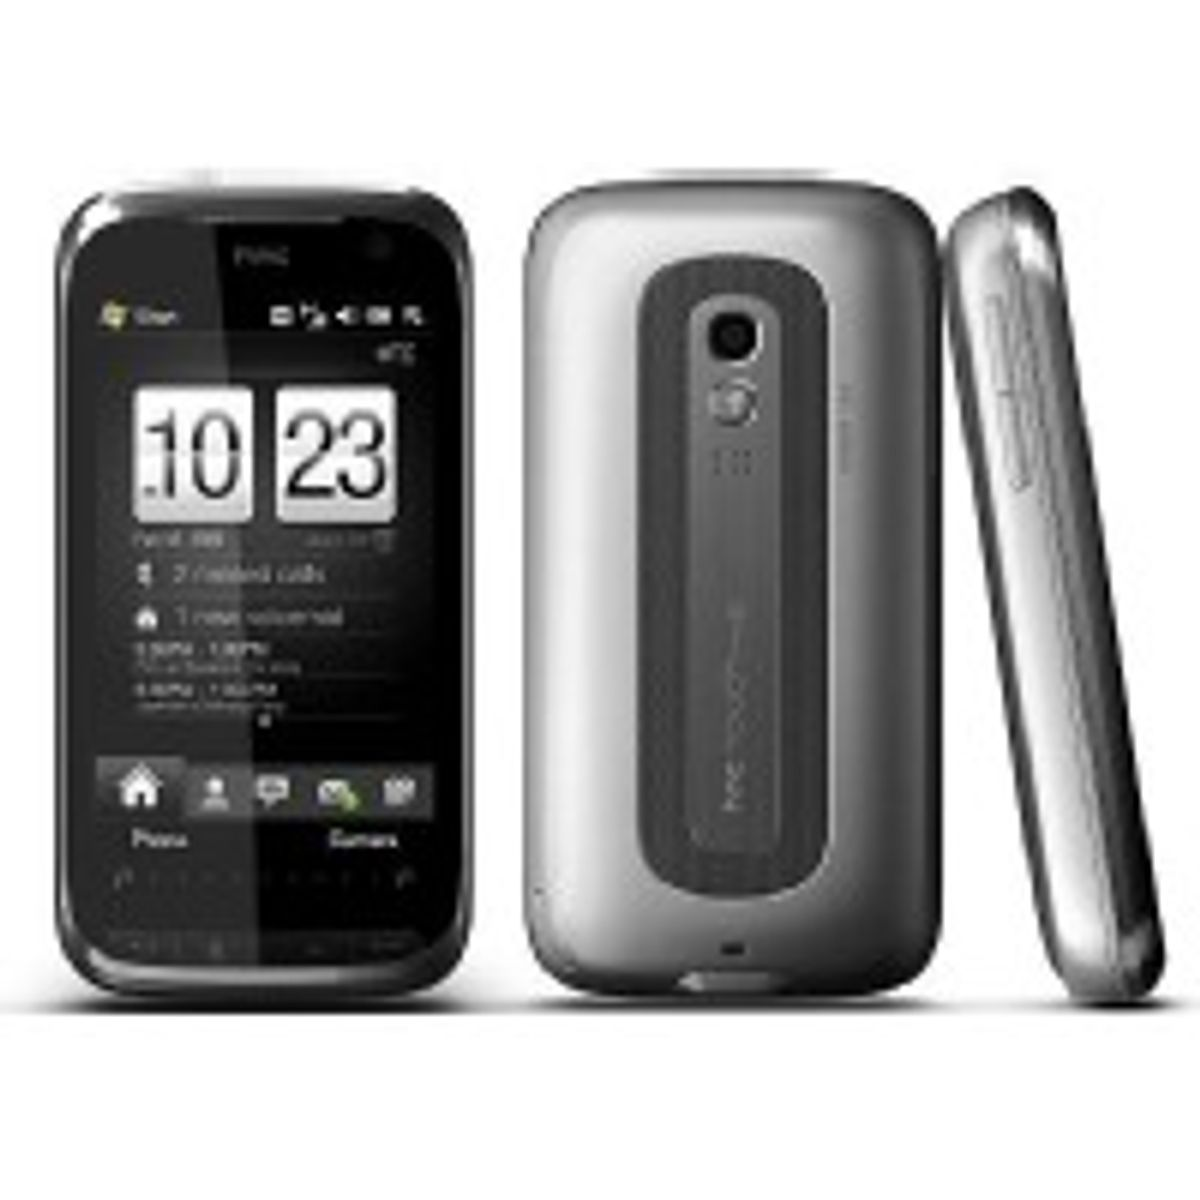 HTC Touch Pro 2 (T7373)